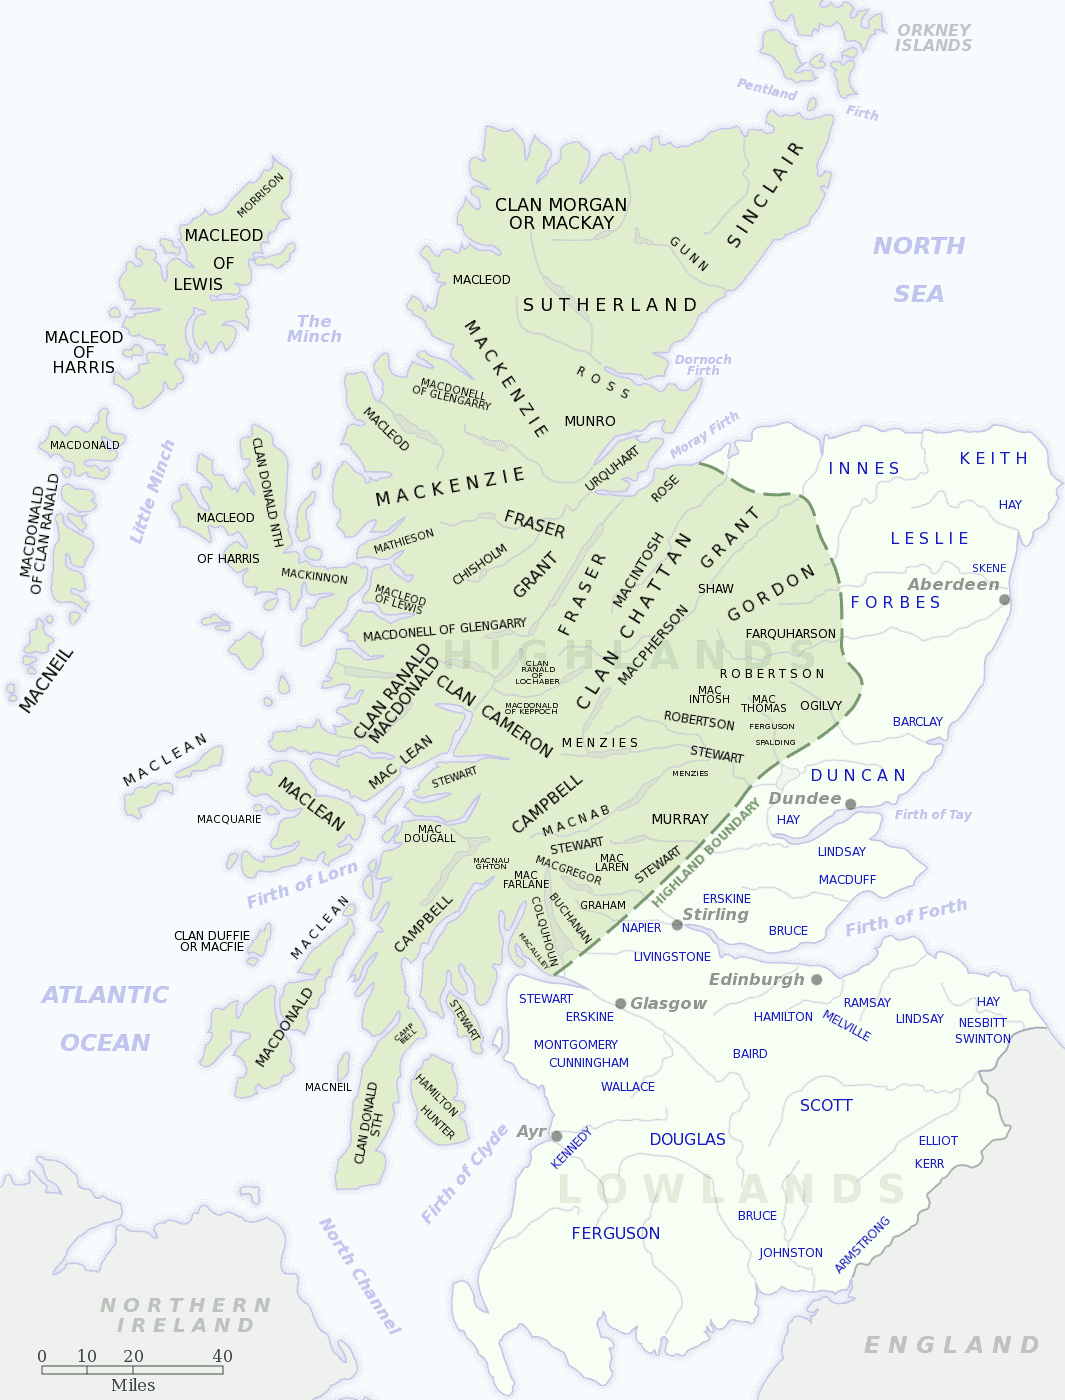 Clan-Map-of-Scotland-derived-from-The-Scottish-Clans-Their-Tartans-W.-A.K.-Johnston-1939